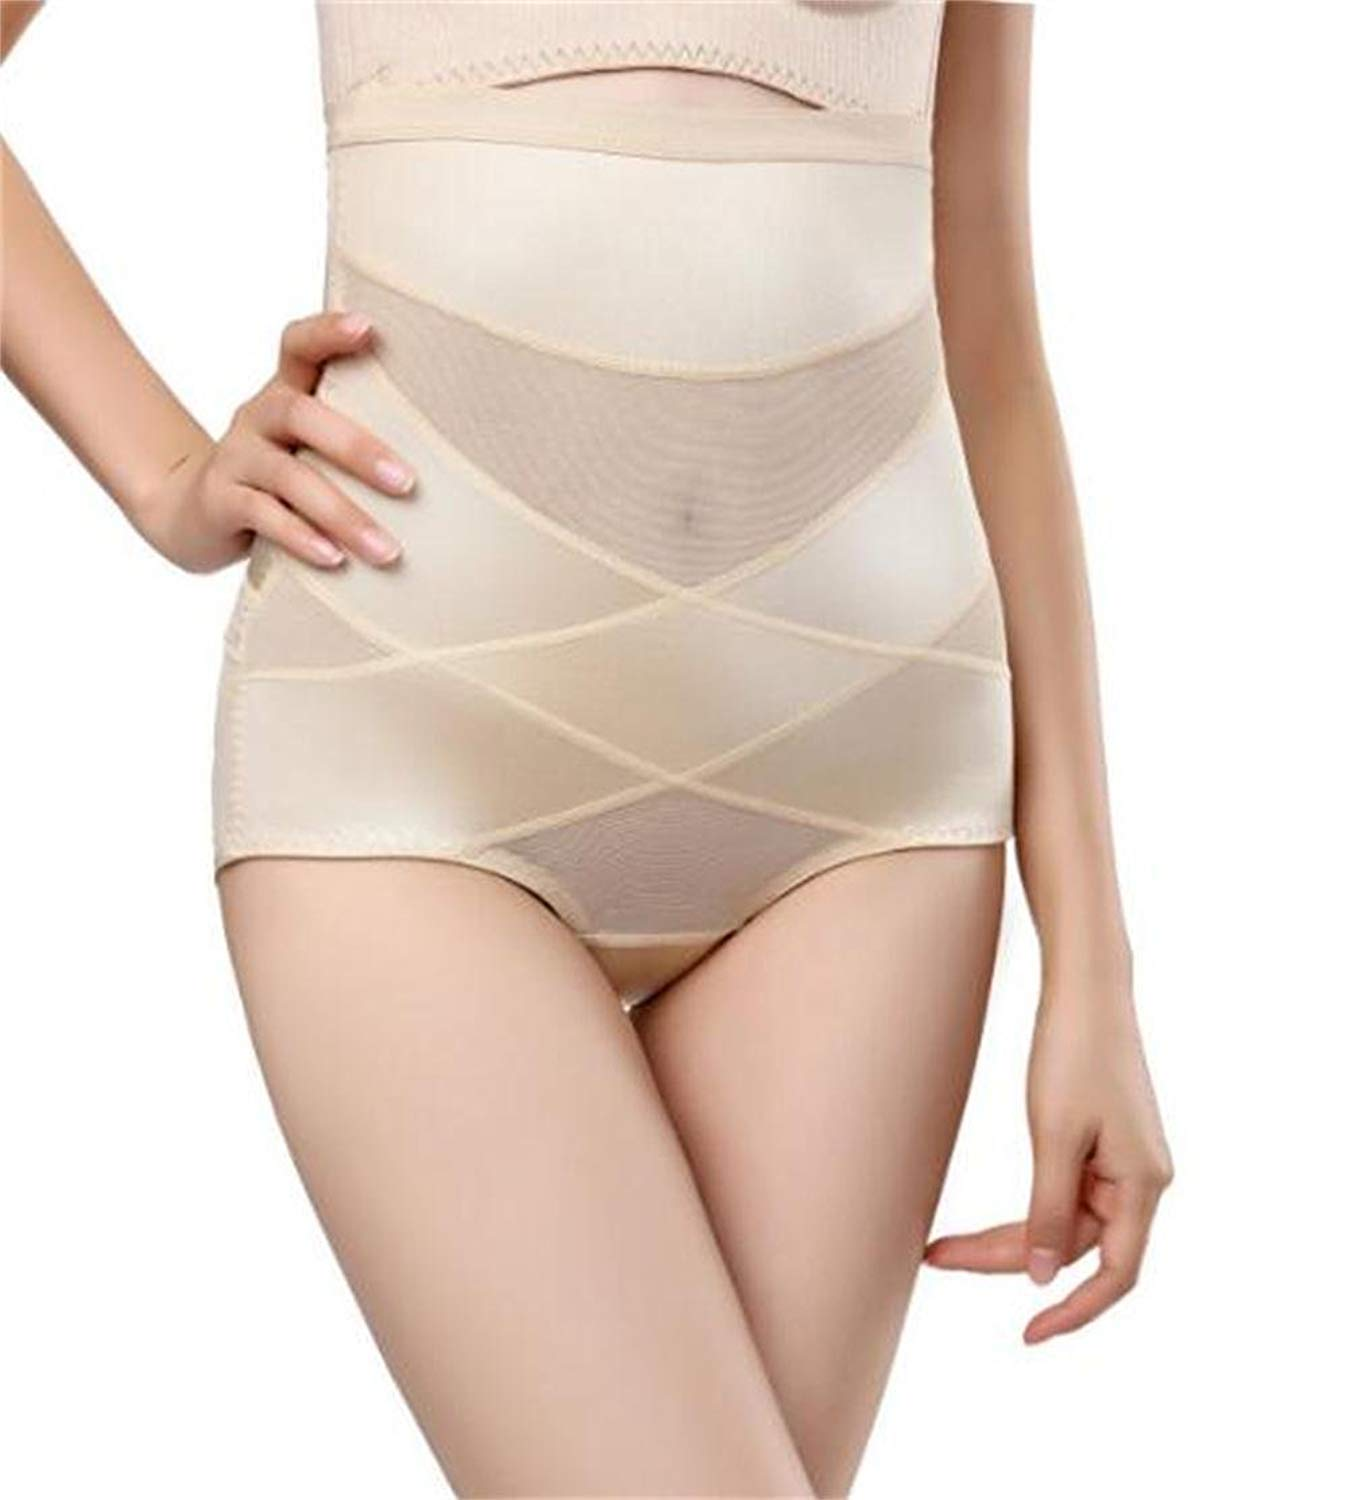 777cc761145f6 Buy Seamless Tummy Slimming Firm Shapewear Figure Control Under Bra ...